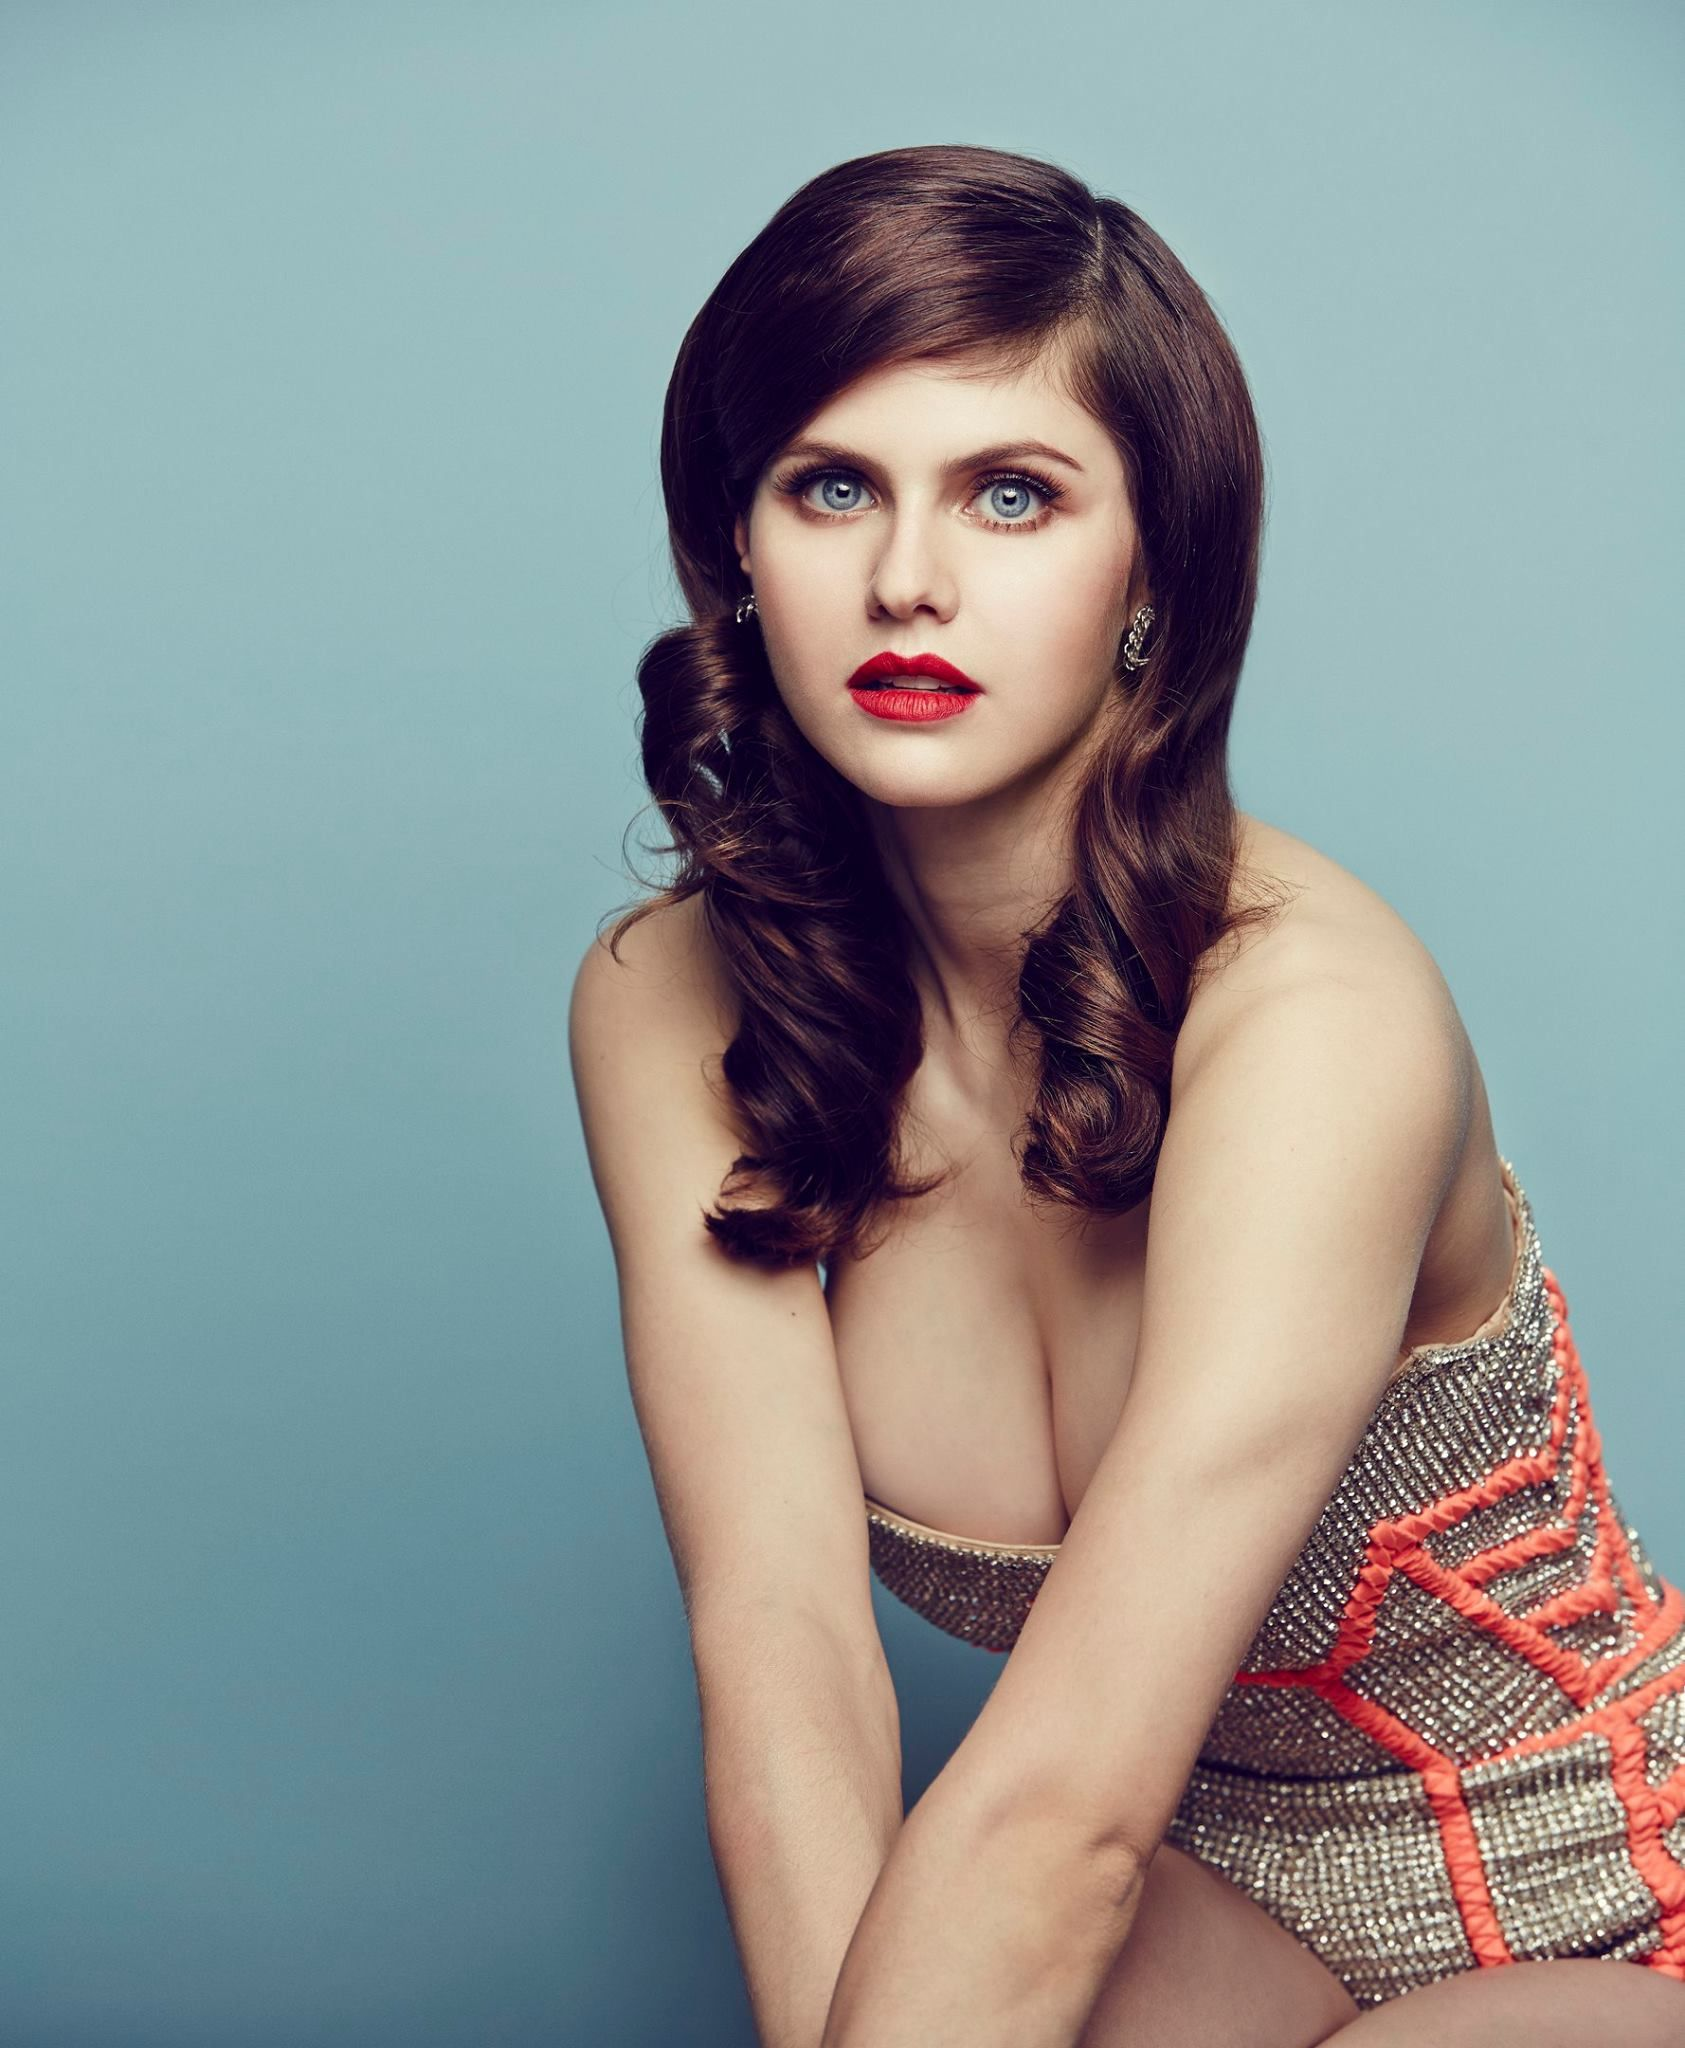 alexandra daddario hot sexy photos baywatch actress | photo